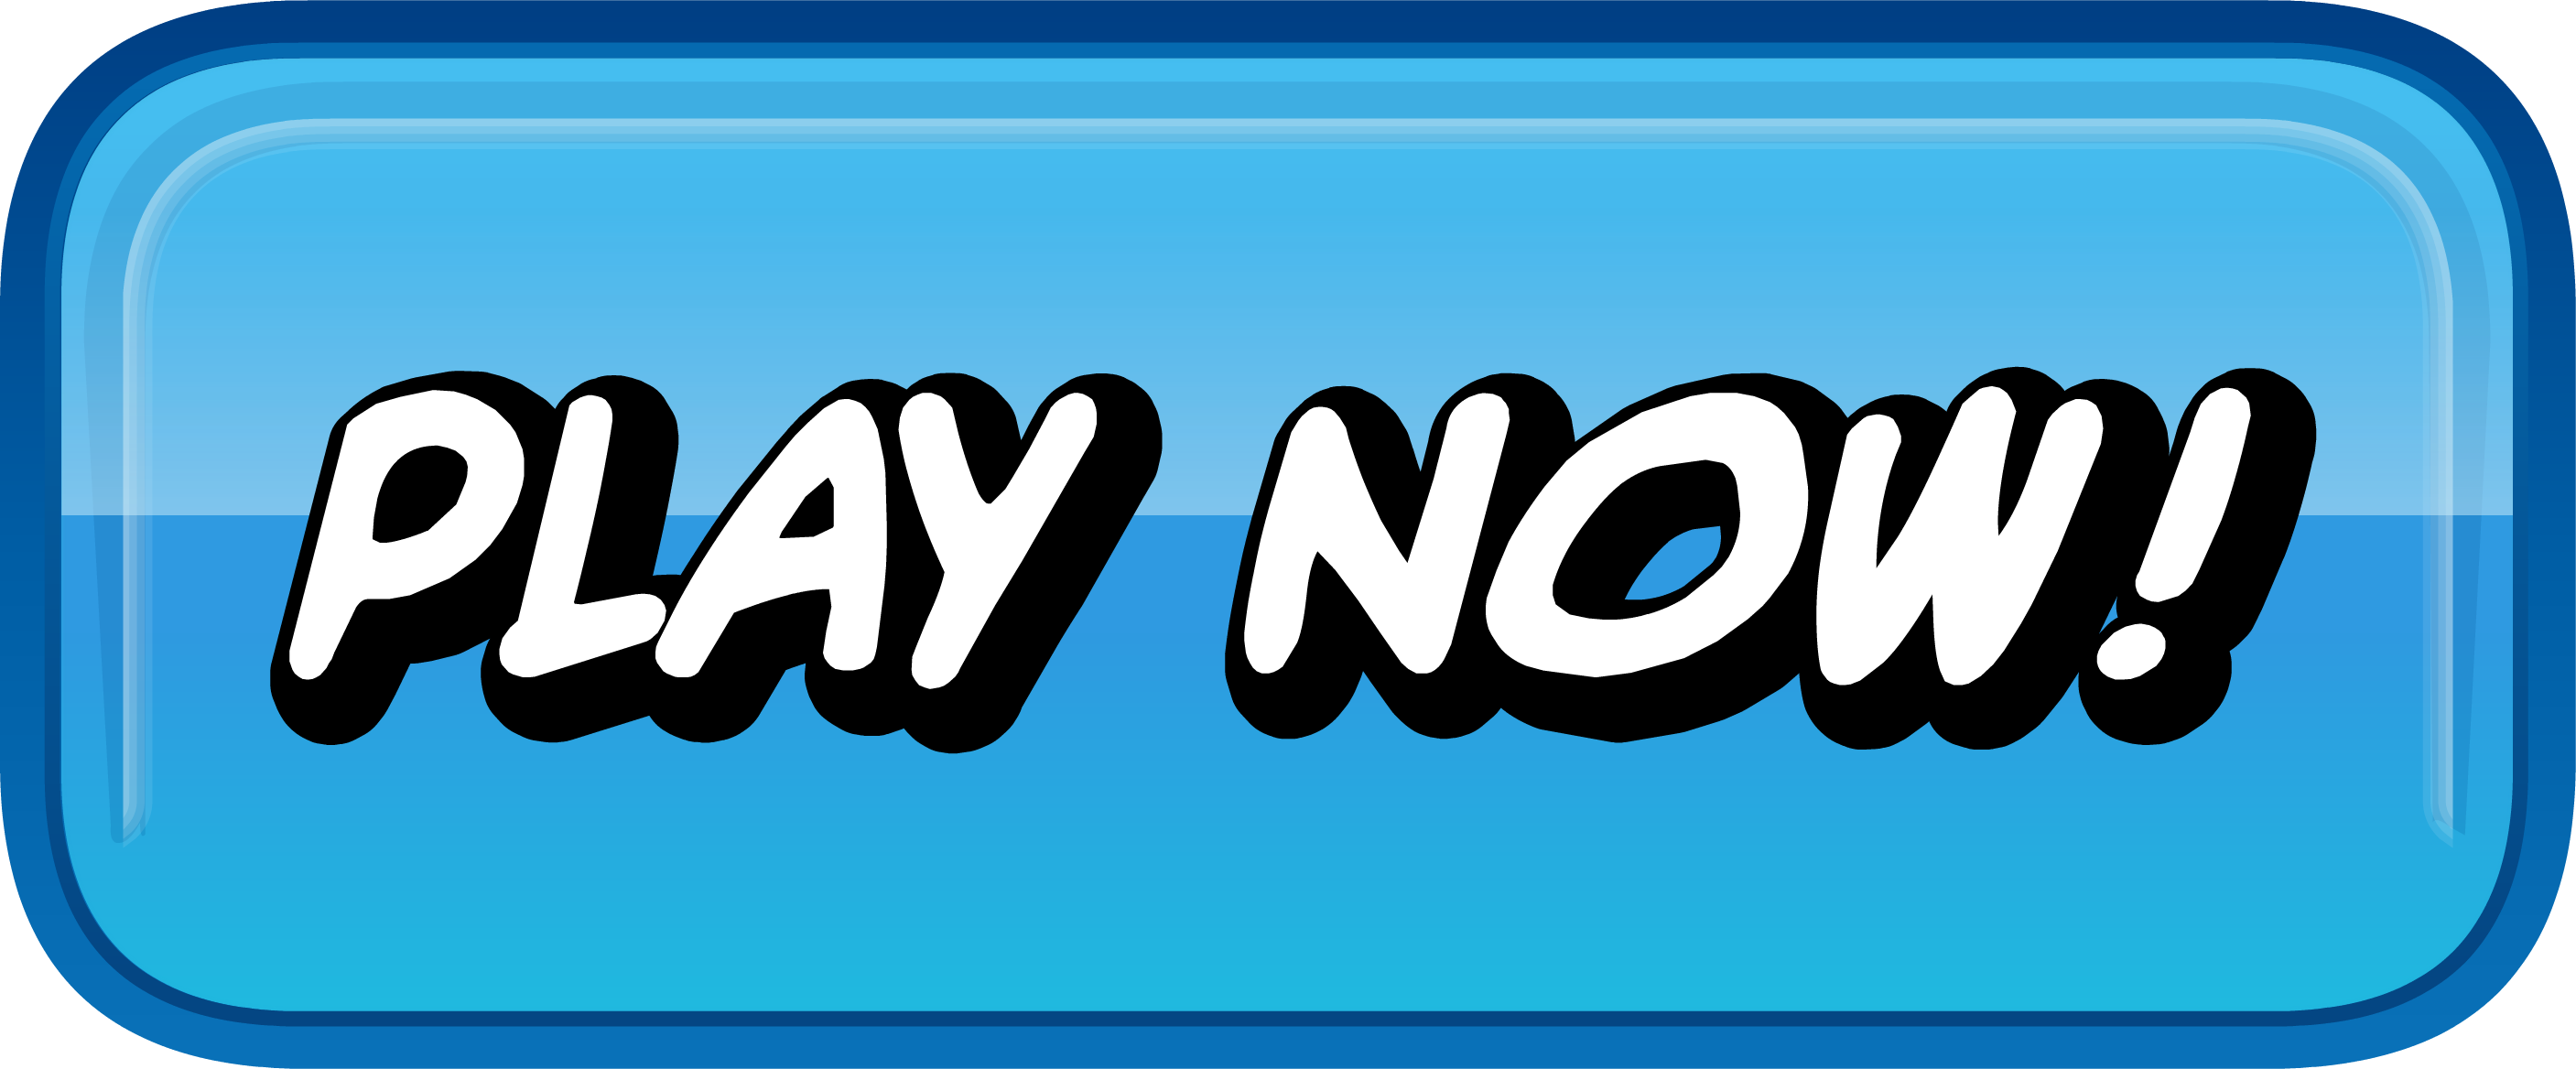 Cash Runner Casino Slot Online | PLAY NOW